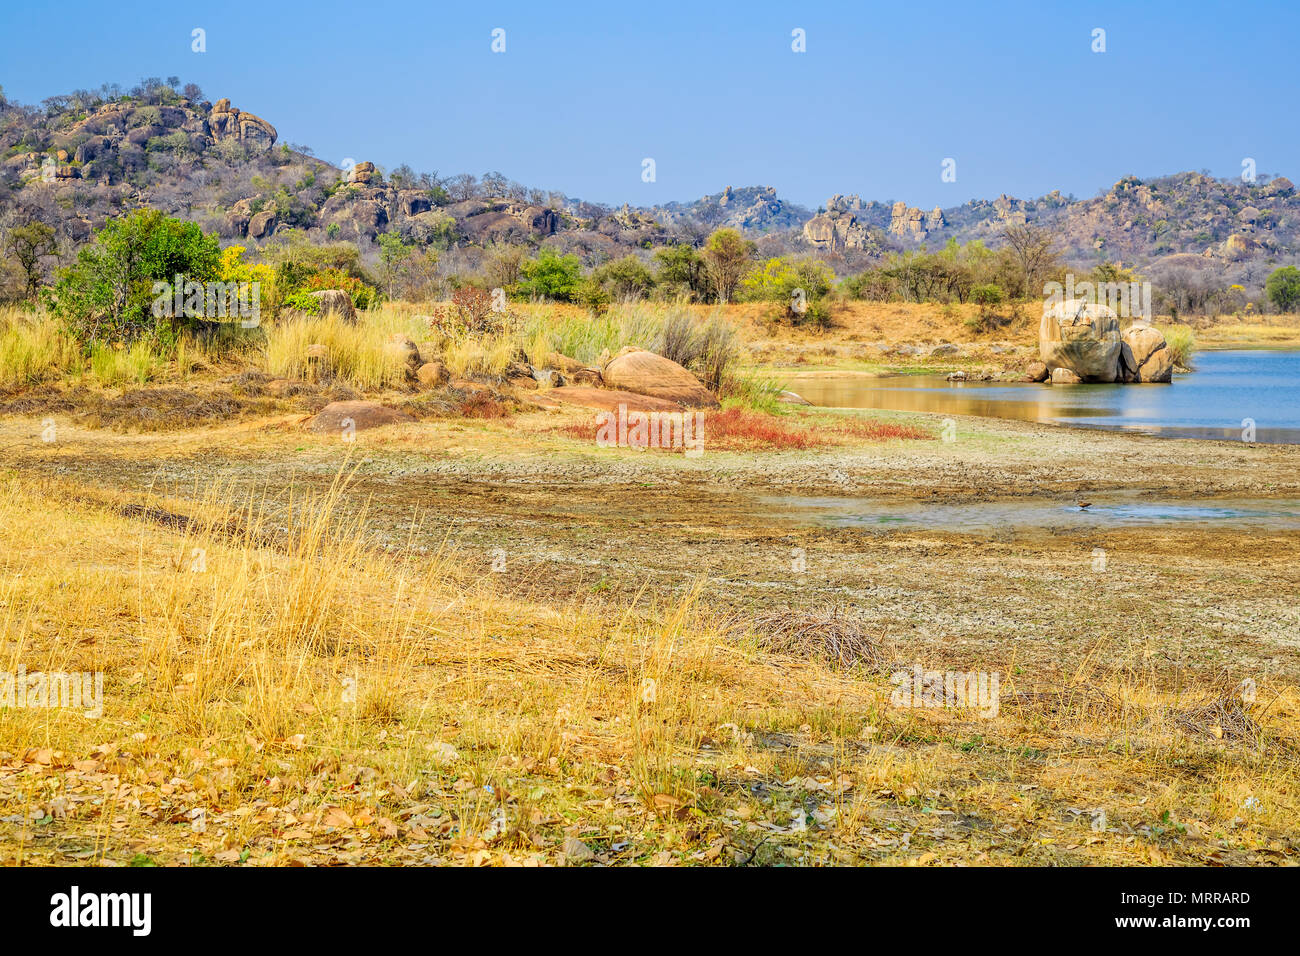 View of a lake surrounded by rocks, in Matobo National Park, Zimbabwe. September 26, 2016. - Stock Image